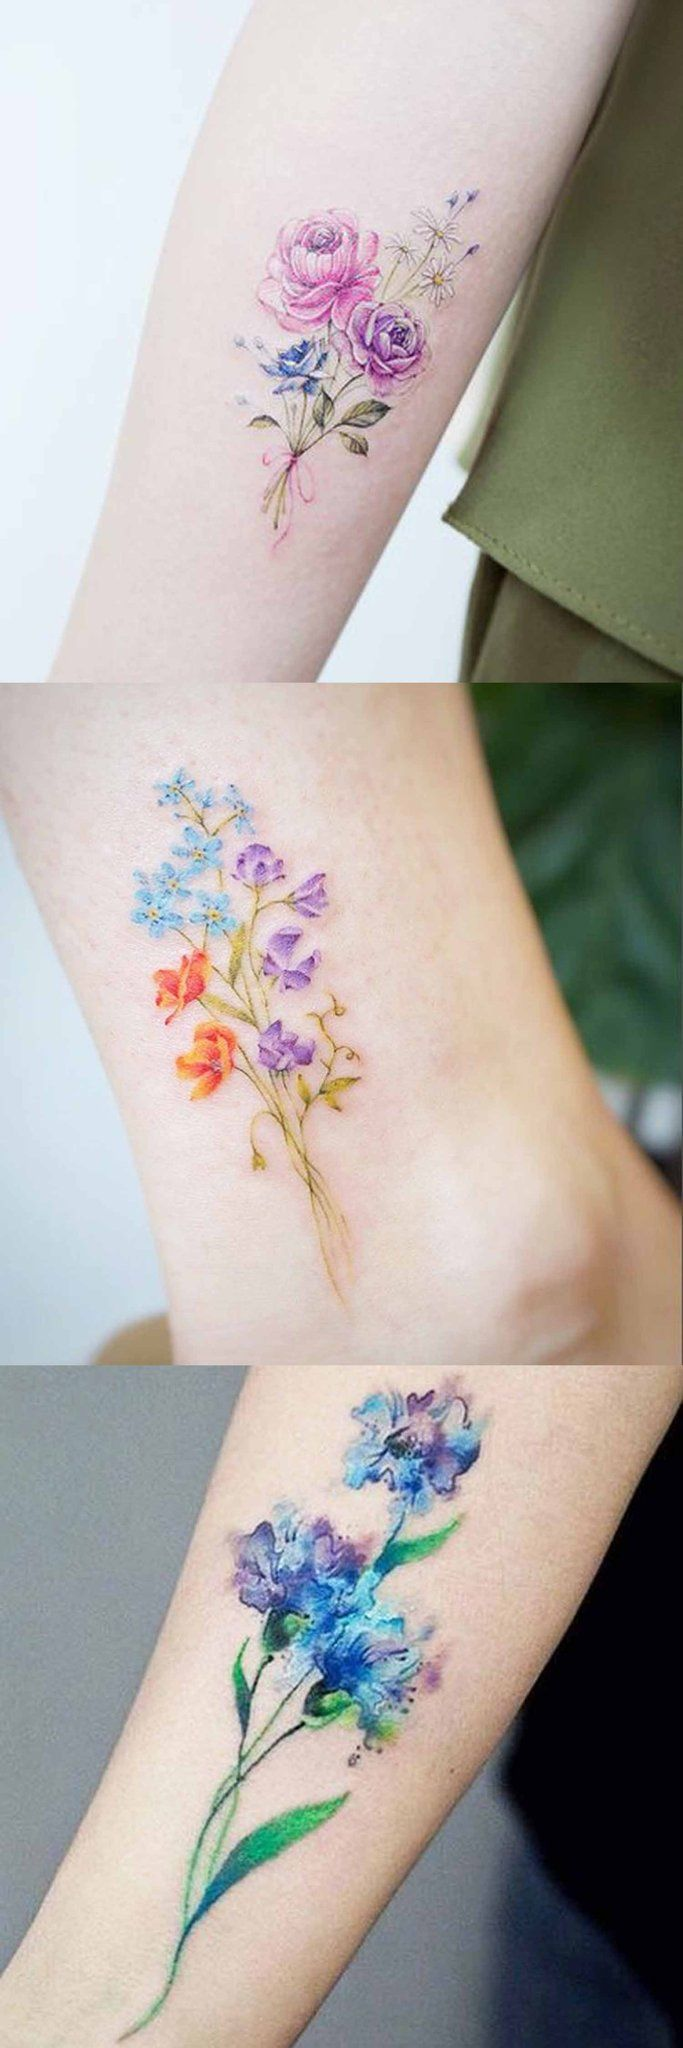 Cool Flower Tattoos: Small Tiny Floral Flower Tattoo Ideas At MyBodiArt.com